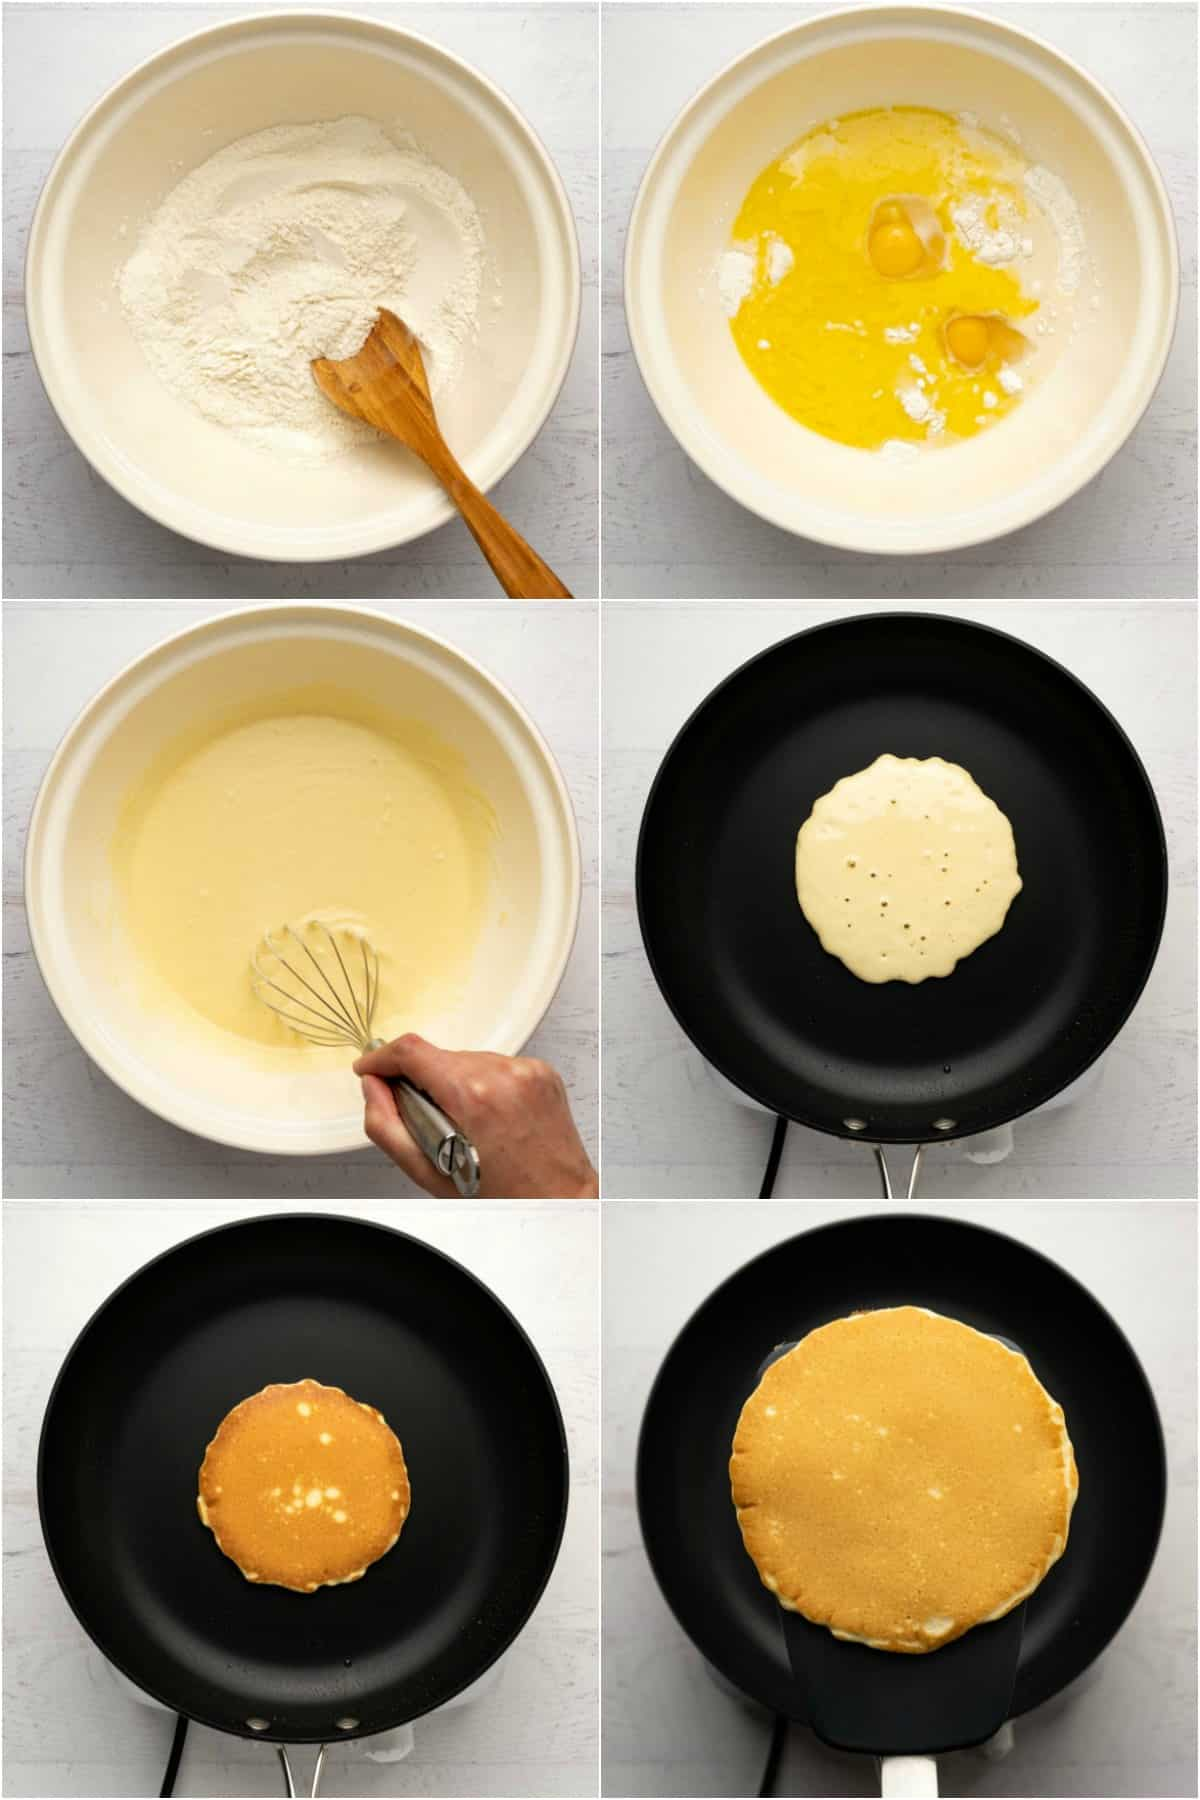 Step by step process photo collage of making pancakes.